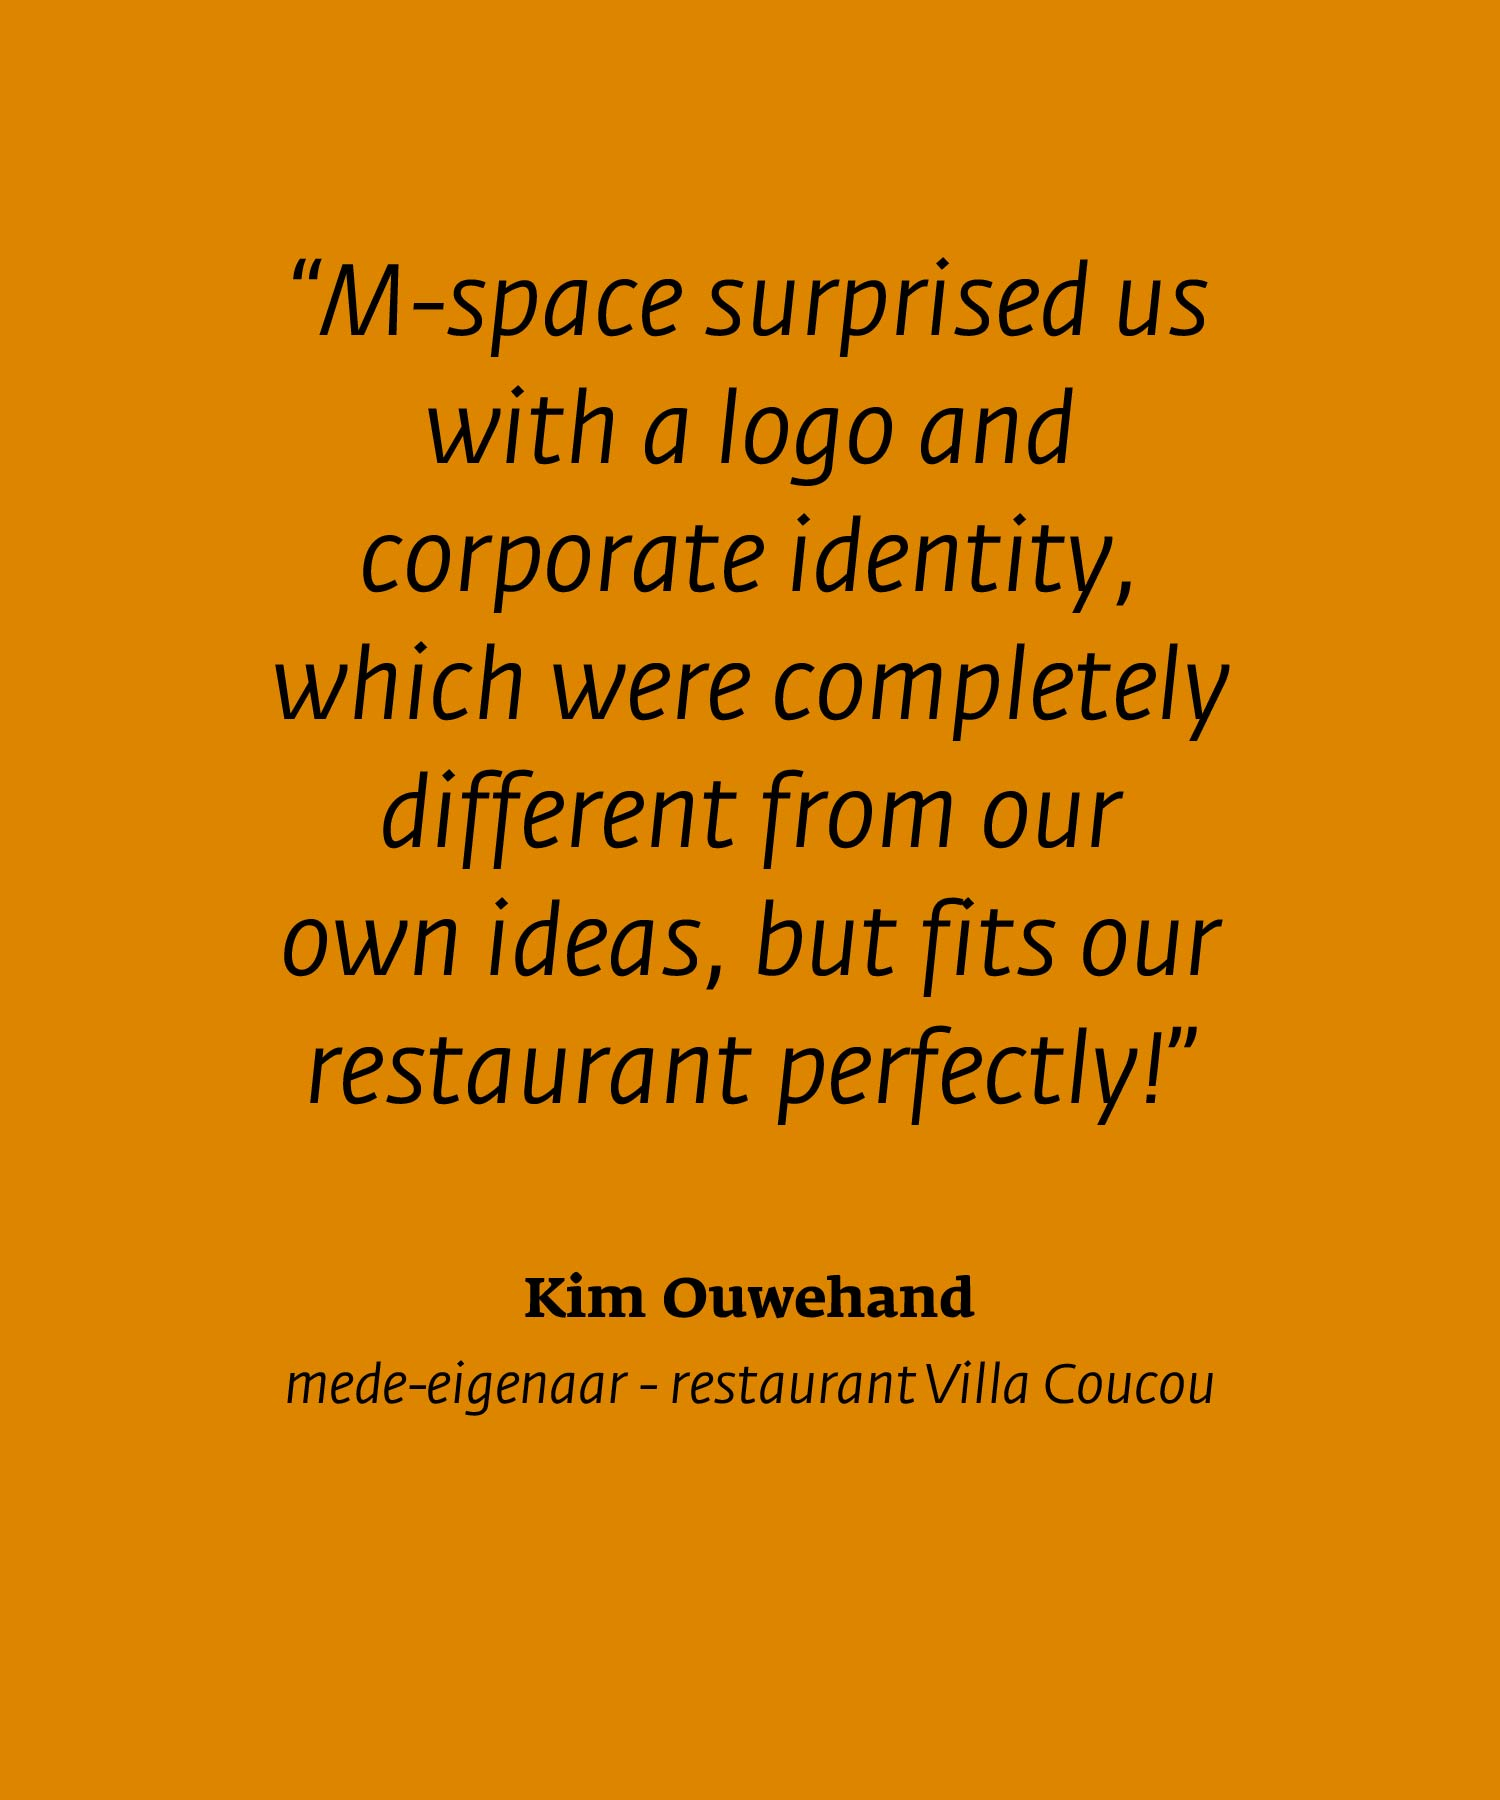 Villa Coucou quote Kim Ouwehand